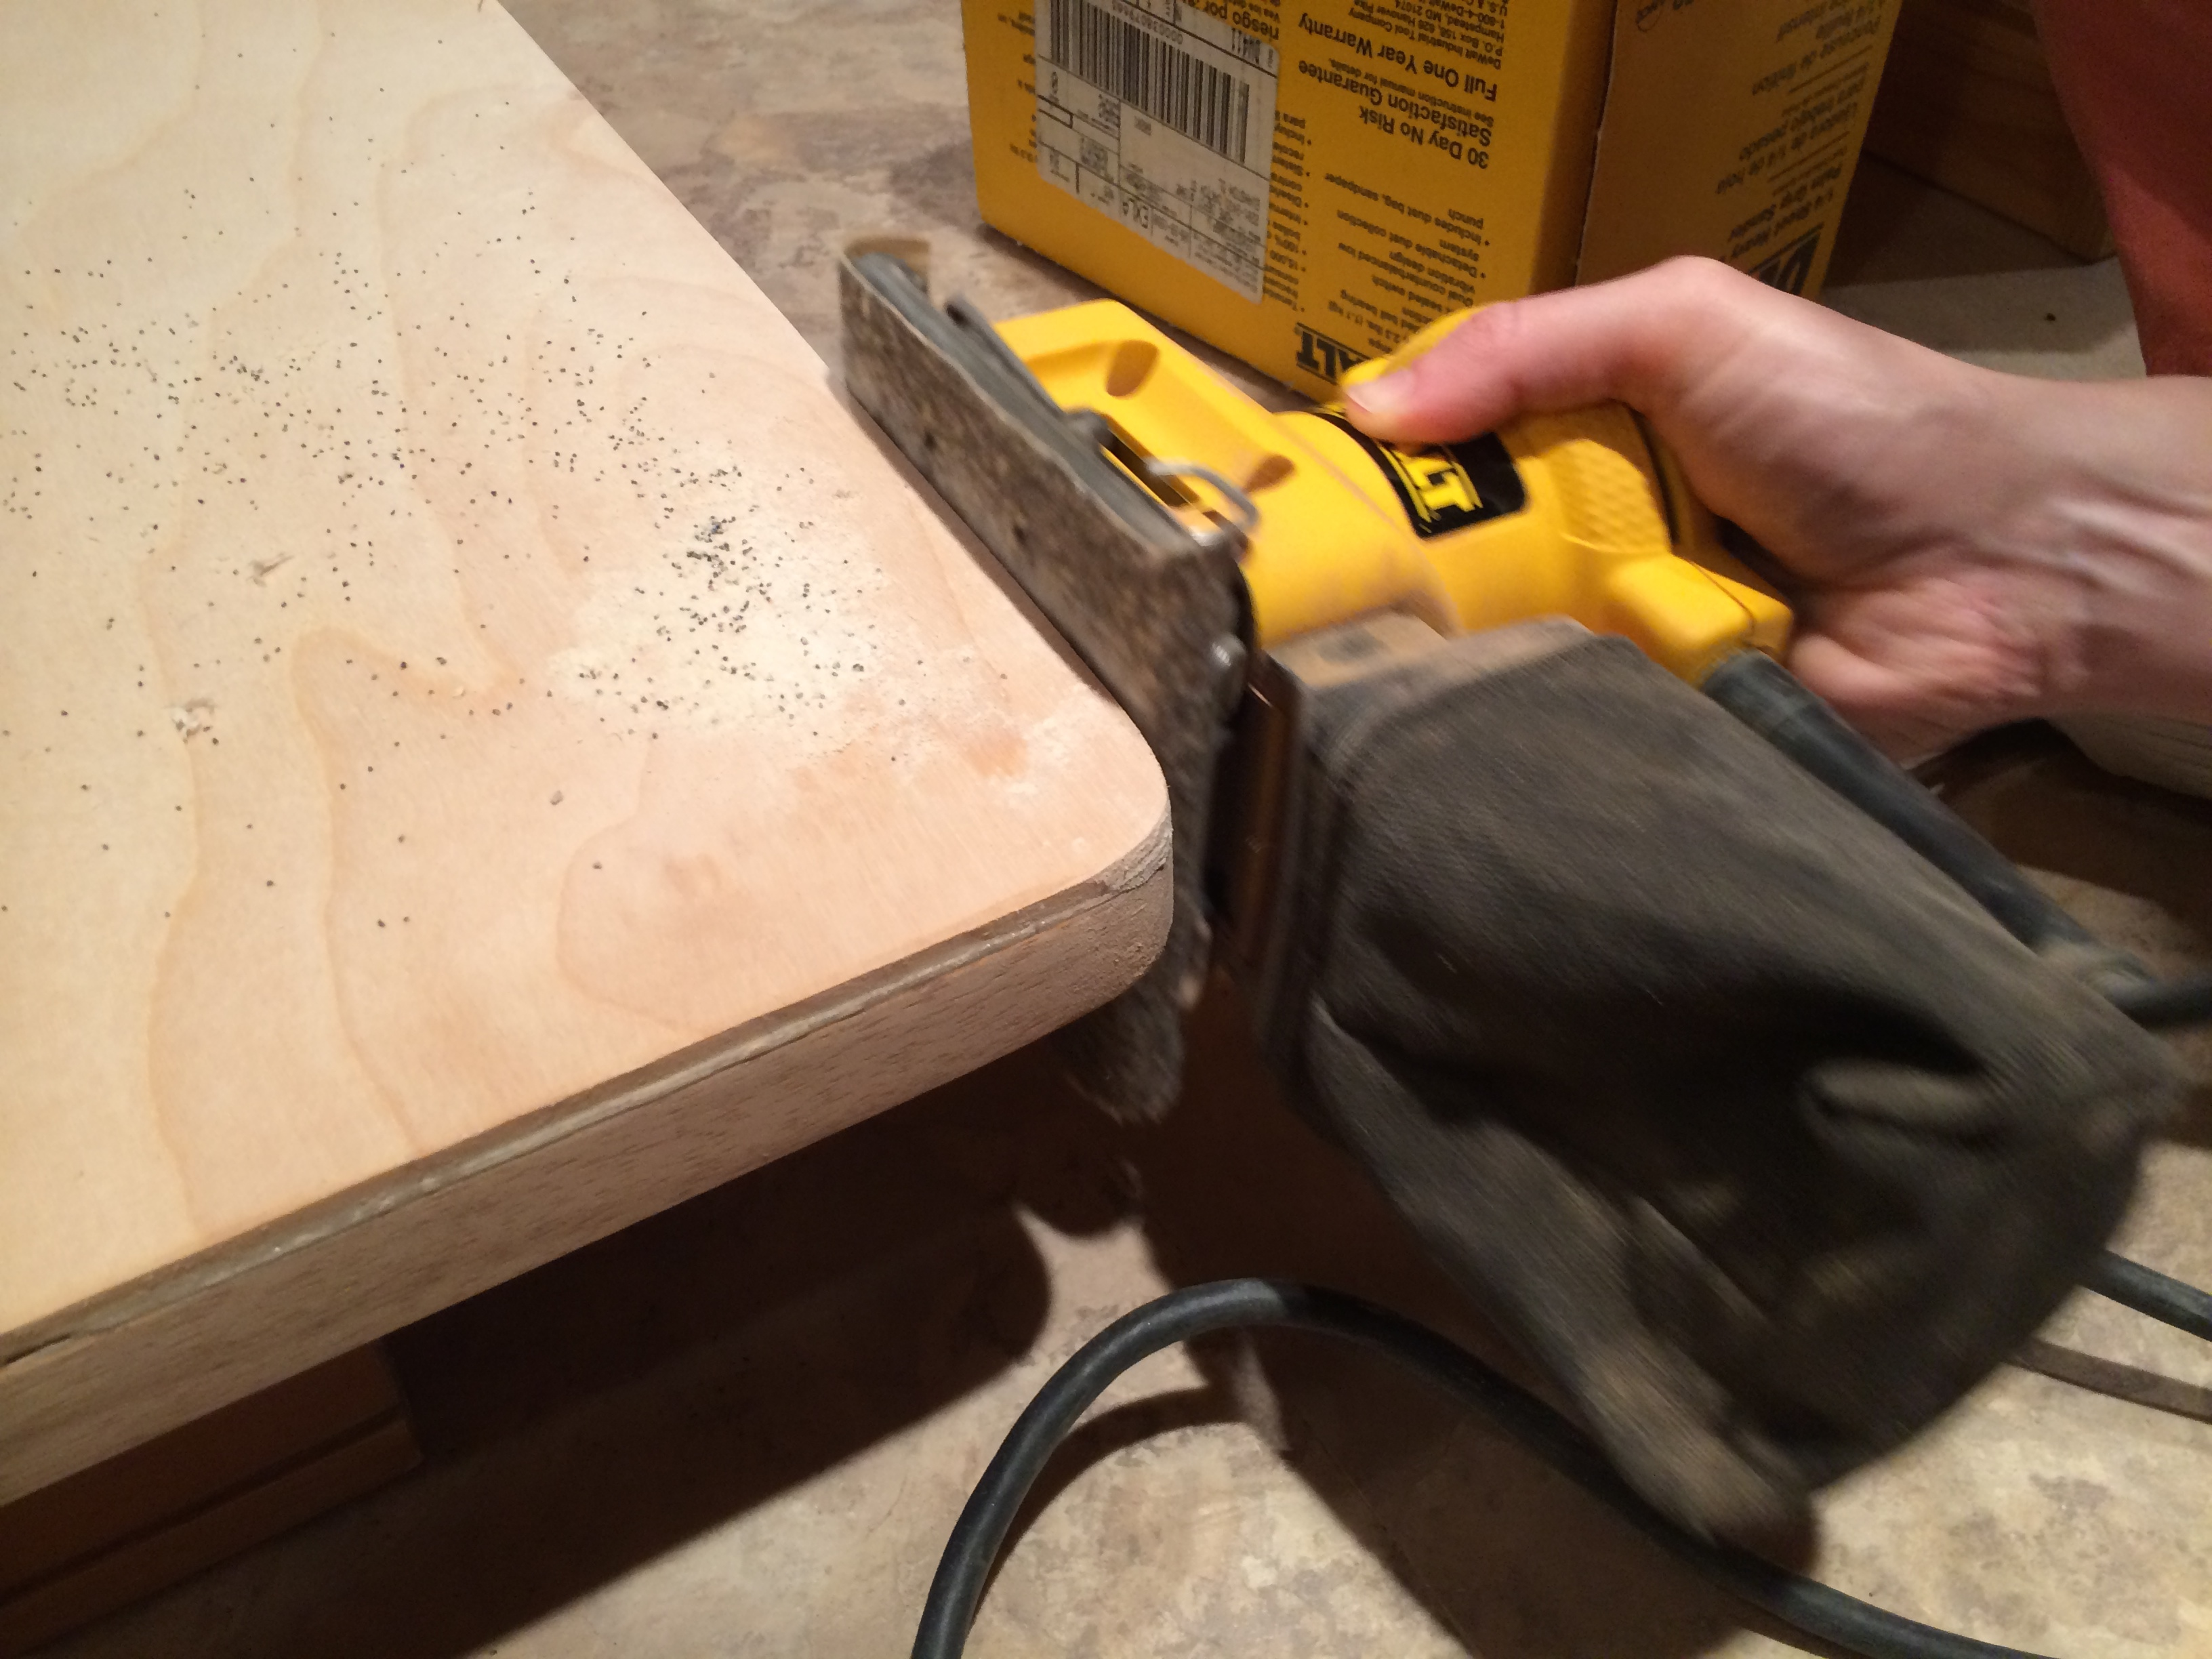 Sanding with rough grit sandpaper